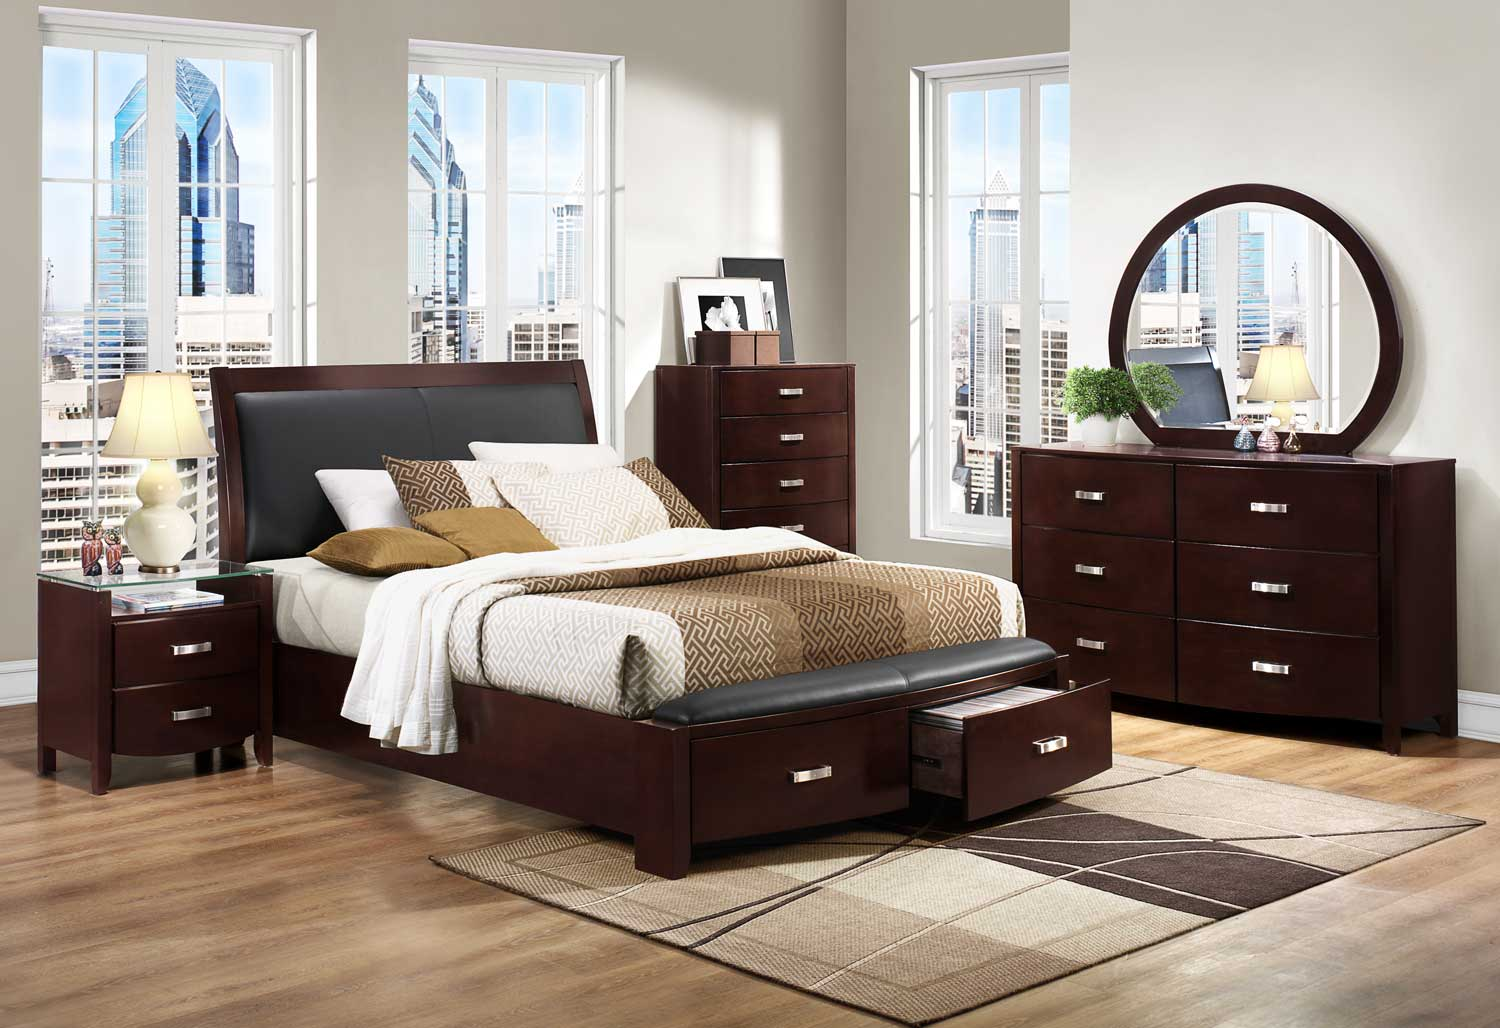 Picture of: Homelegance Lyric Platform Bedroom Set Dark Espresso B1737nc Bed Set At Homelement Com